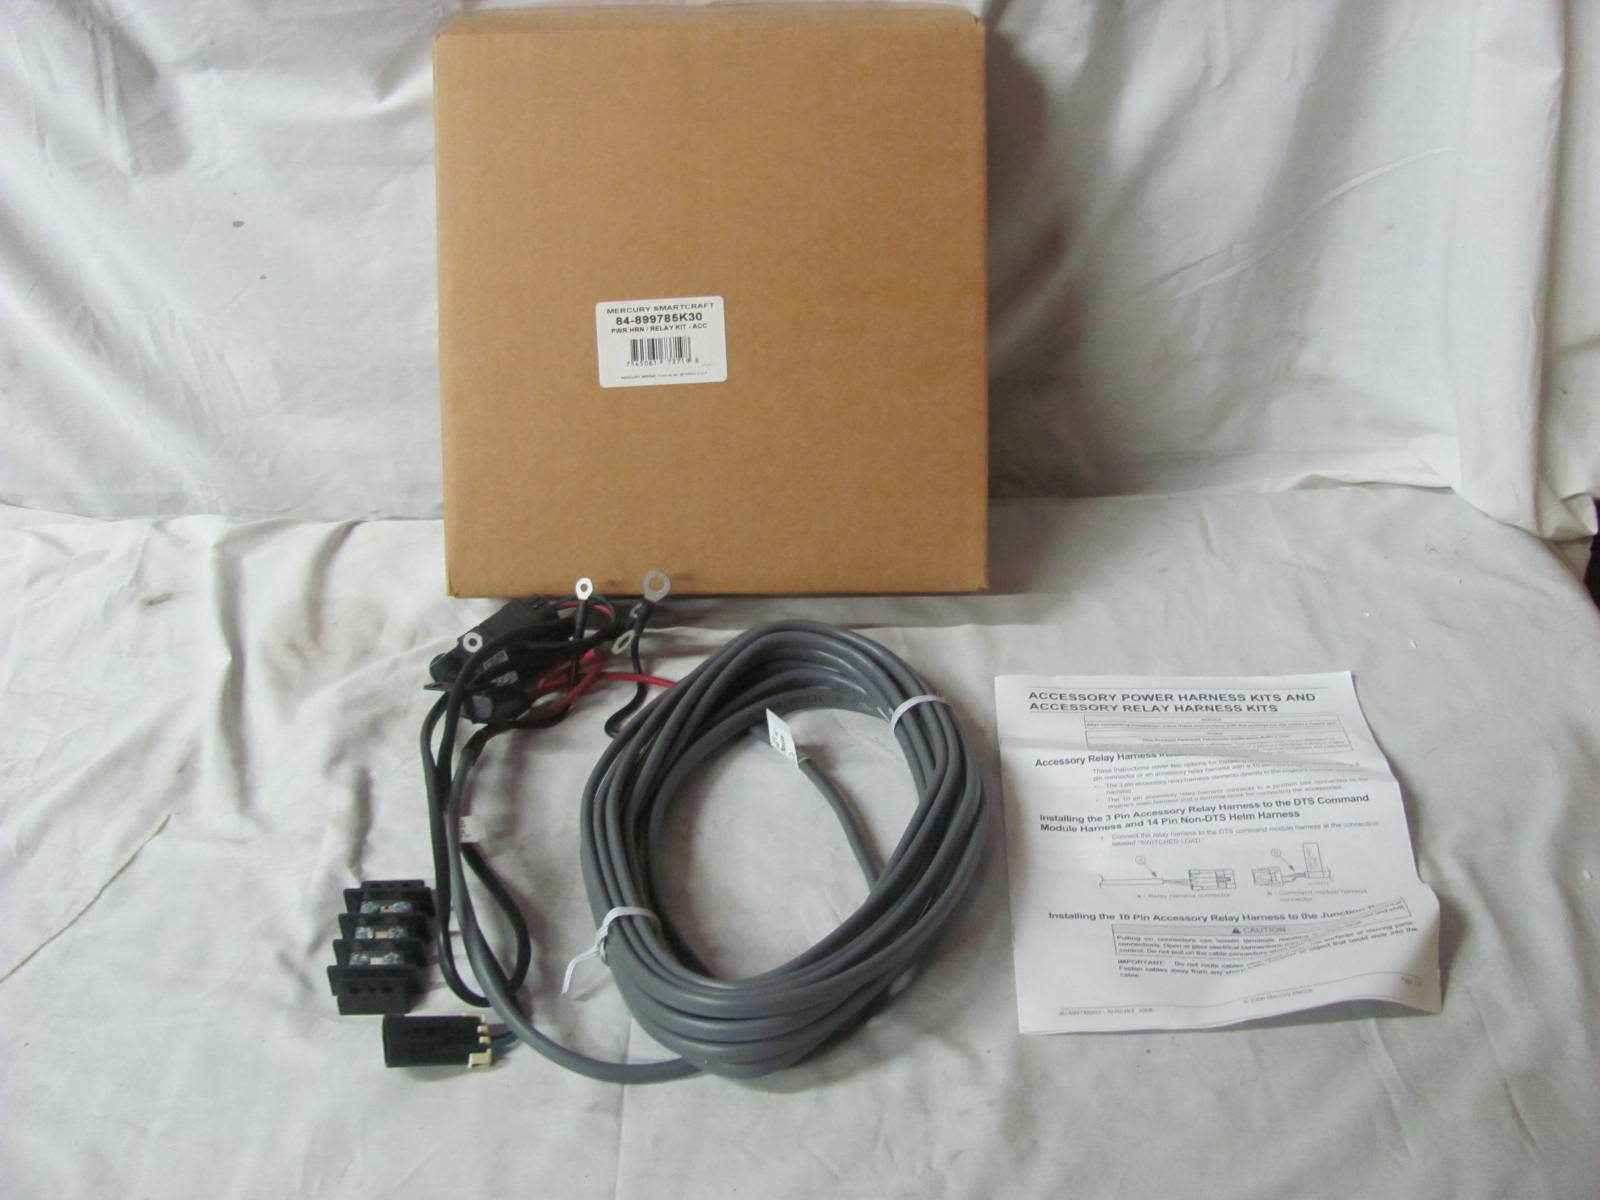 Mercury Marine Smartcraft Power Harness Relay Kit 84 899785k30 Wiring 1 Of 1only 2 Available